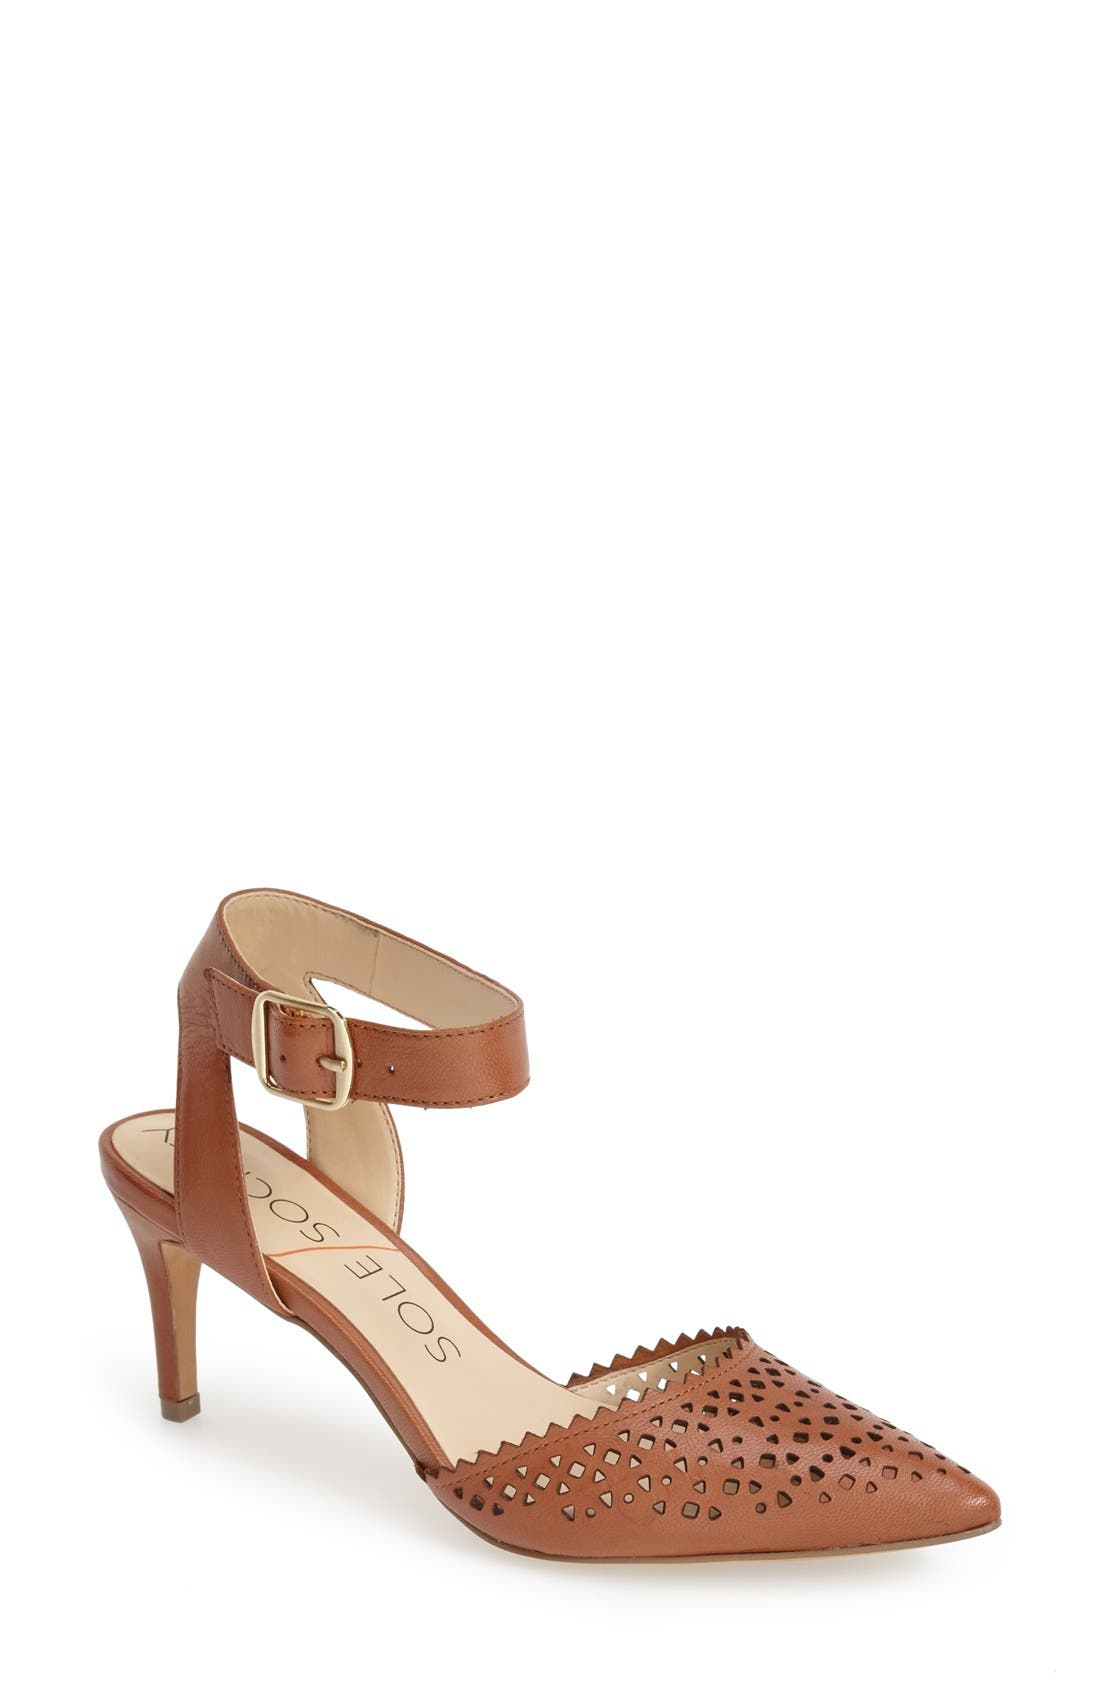 'Emma' Ankle Strap Pump,                         Main,                         color, Light Luggage